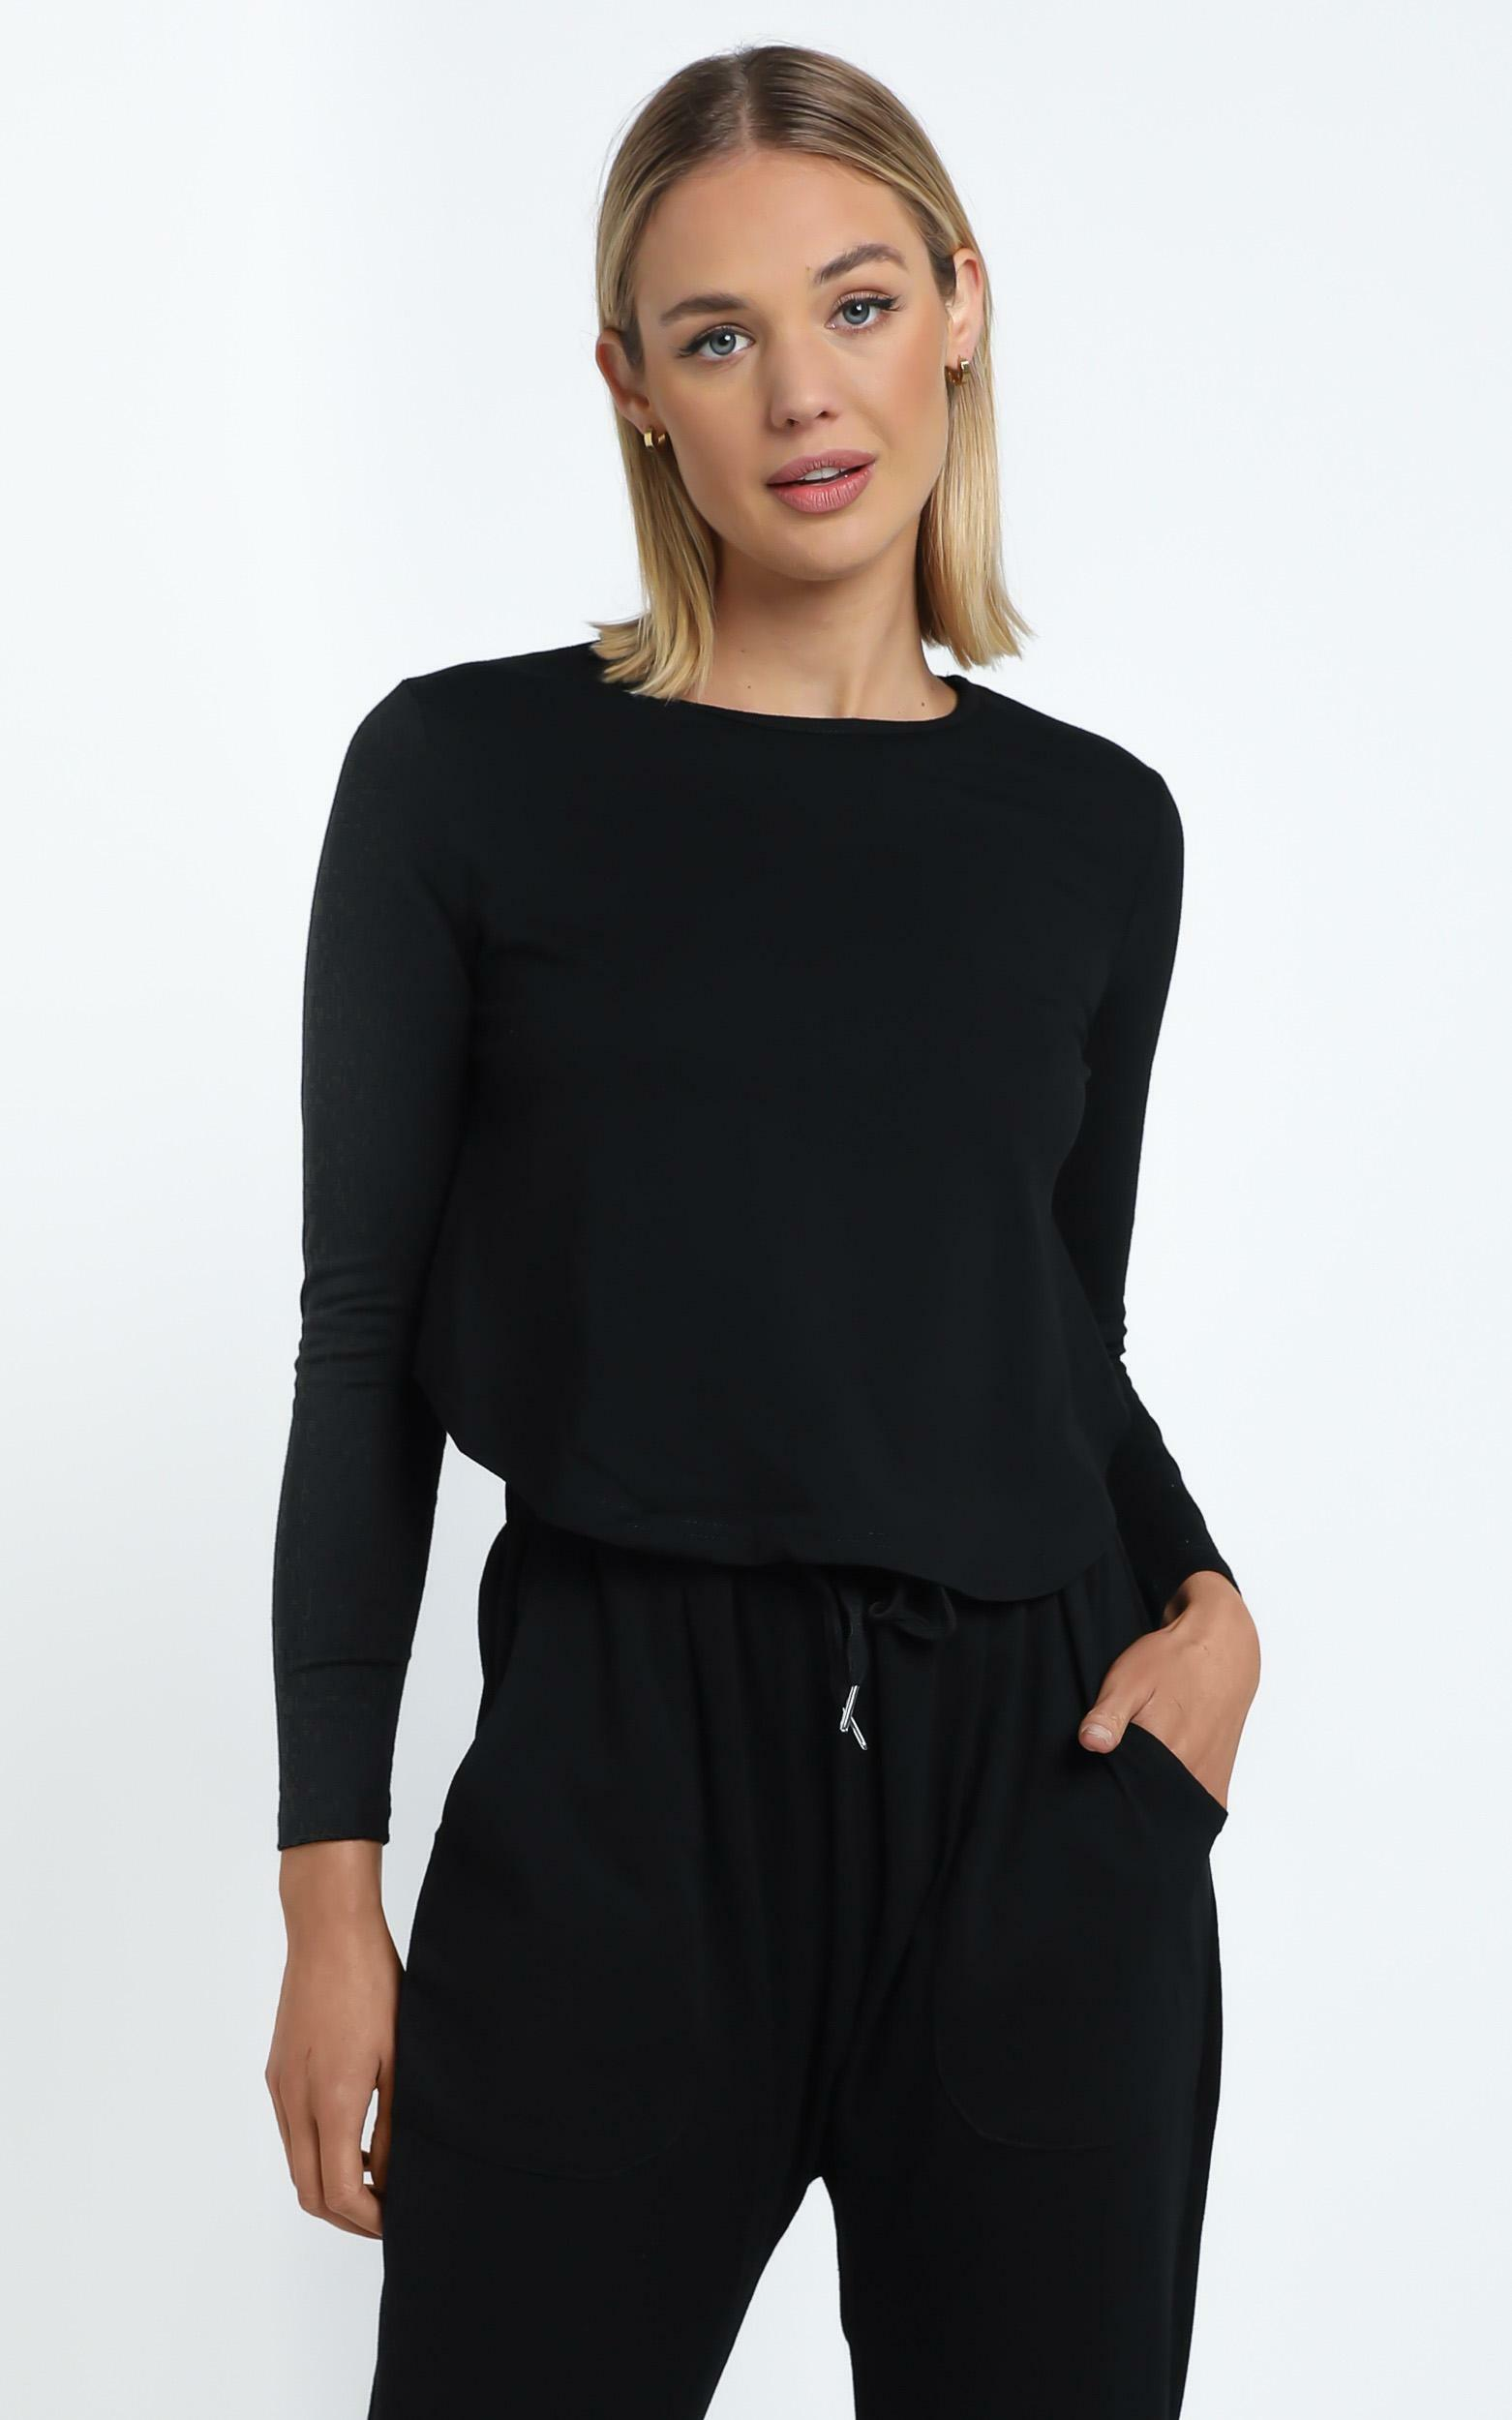 Zanna Top in Black - 14 (XL), Black, hi-res image number null